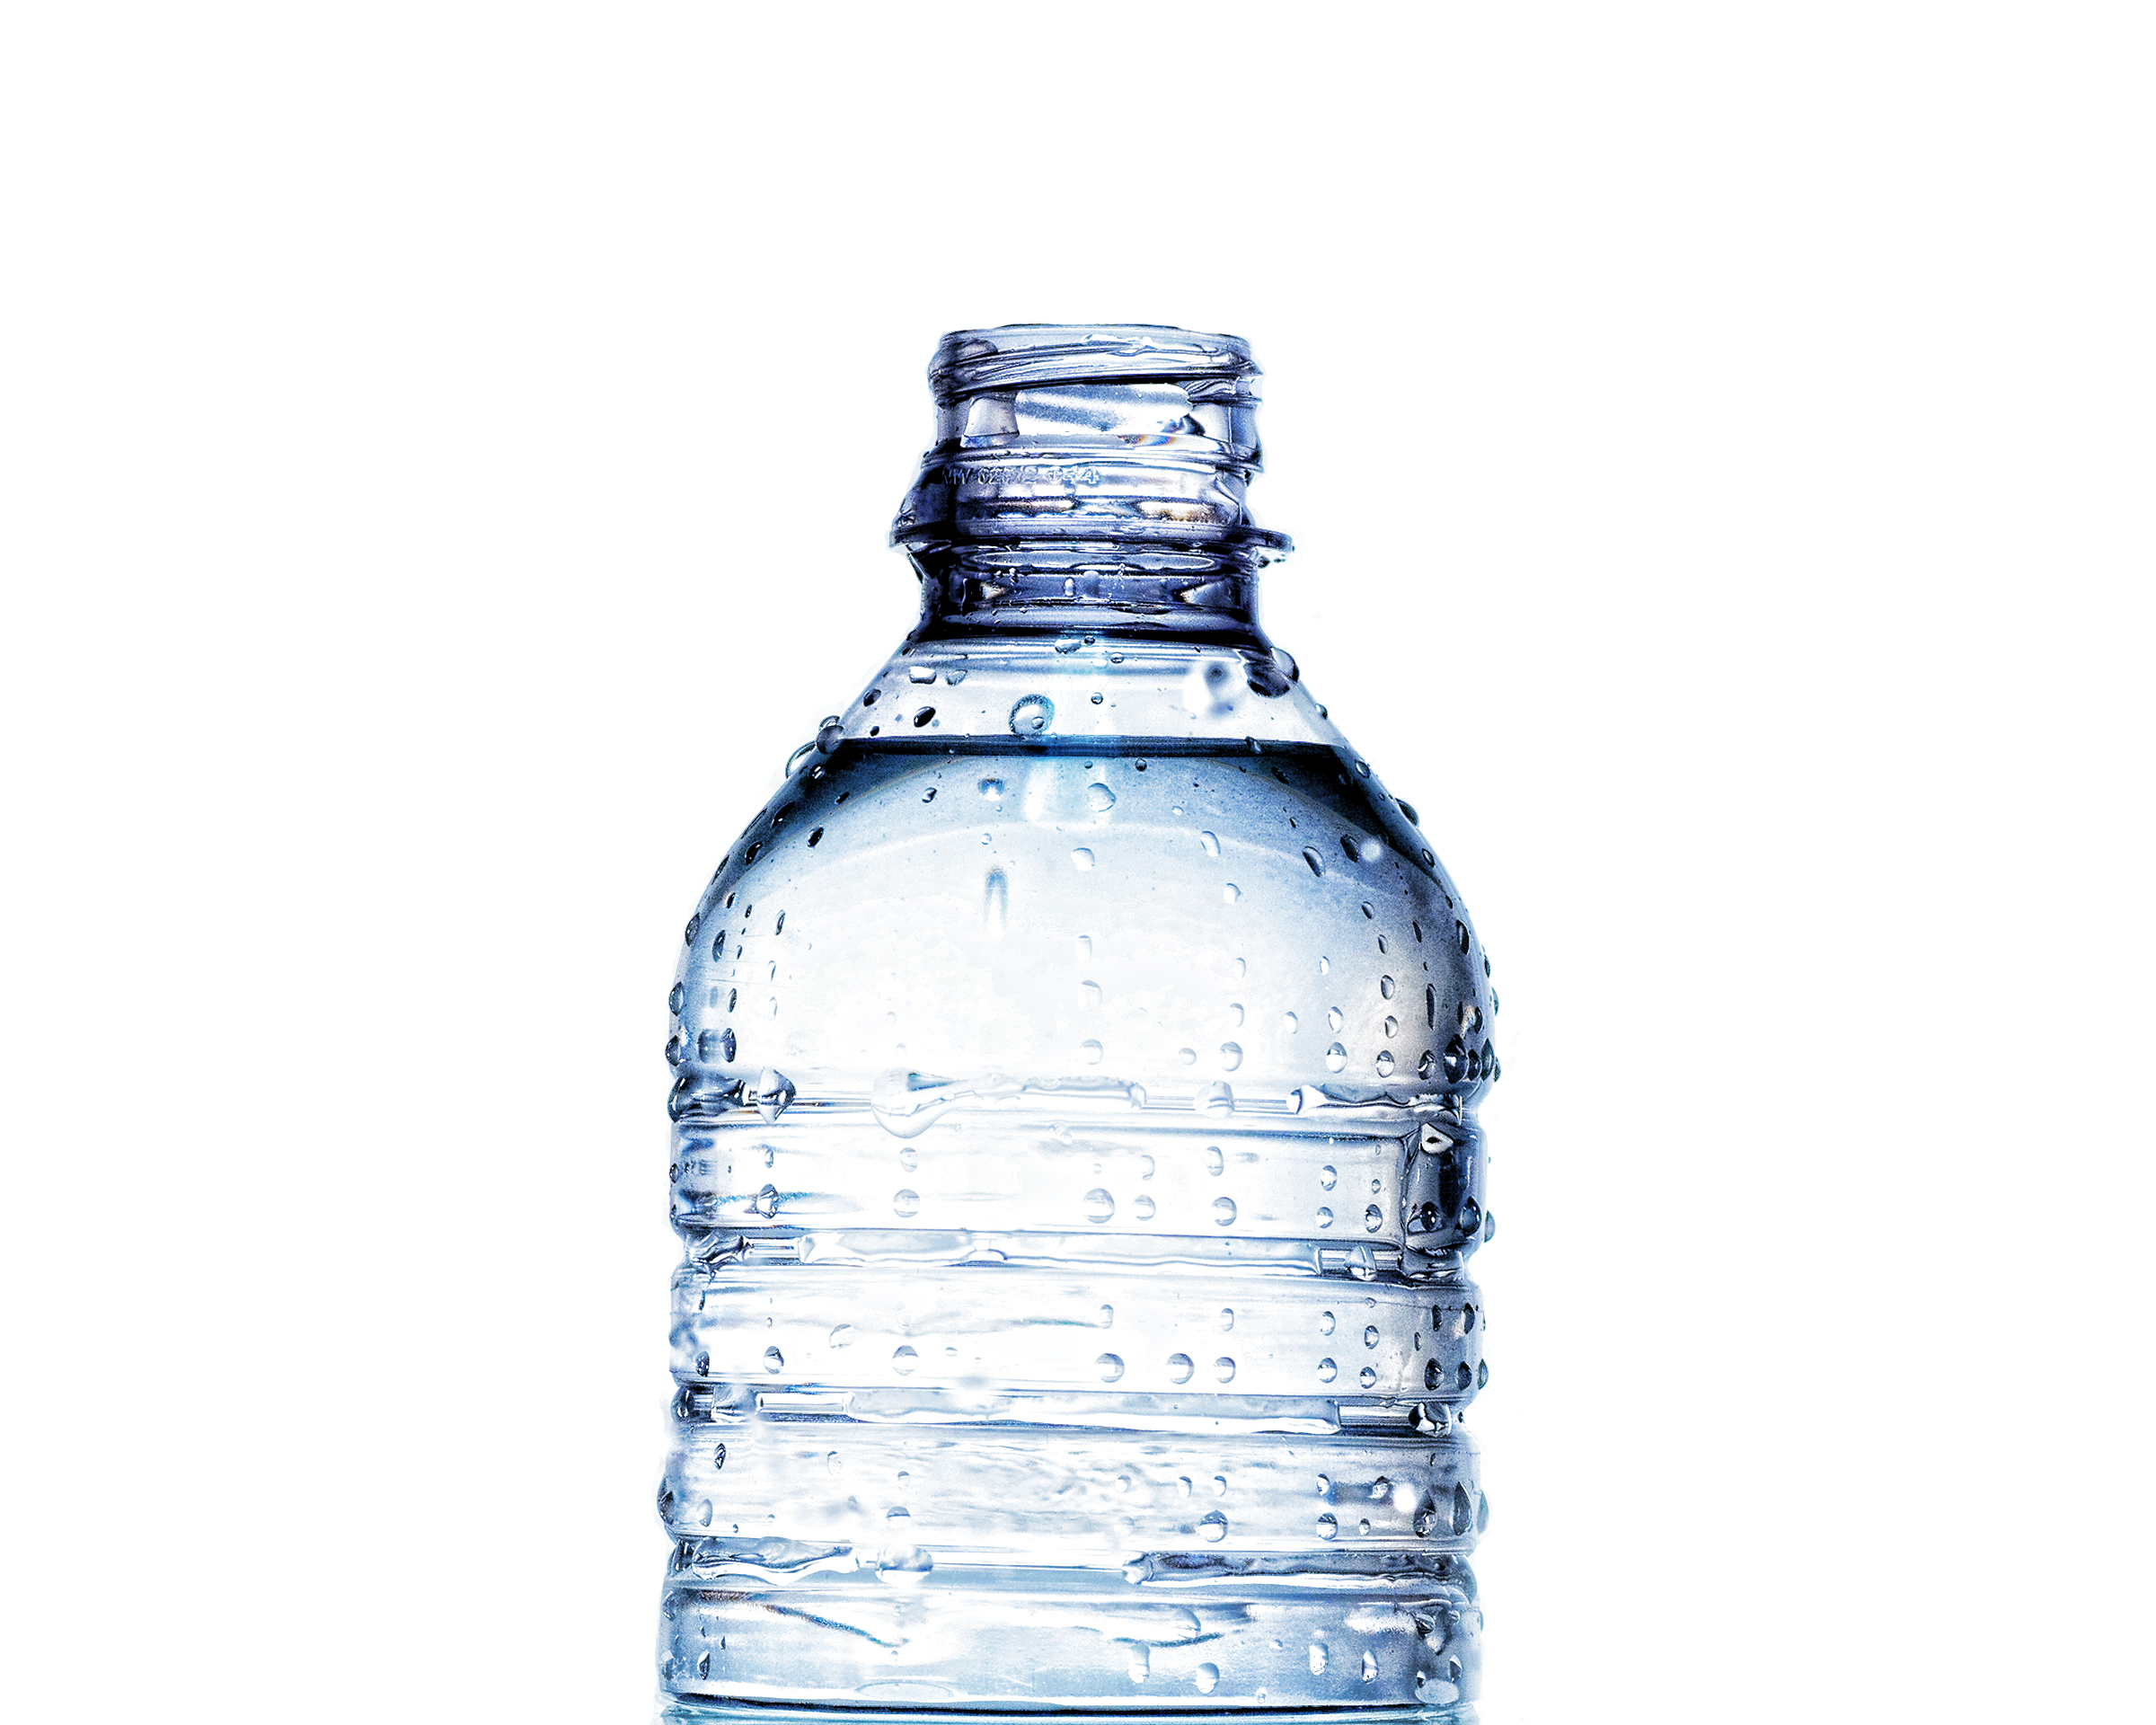 Bottled Water, Aqua, Industry, Sports, Purity, HQ Photo